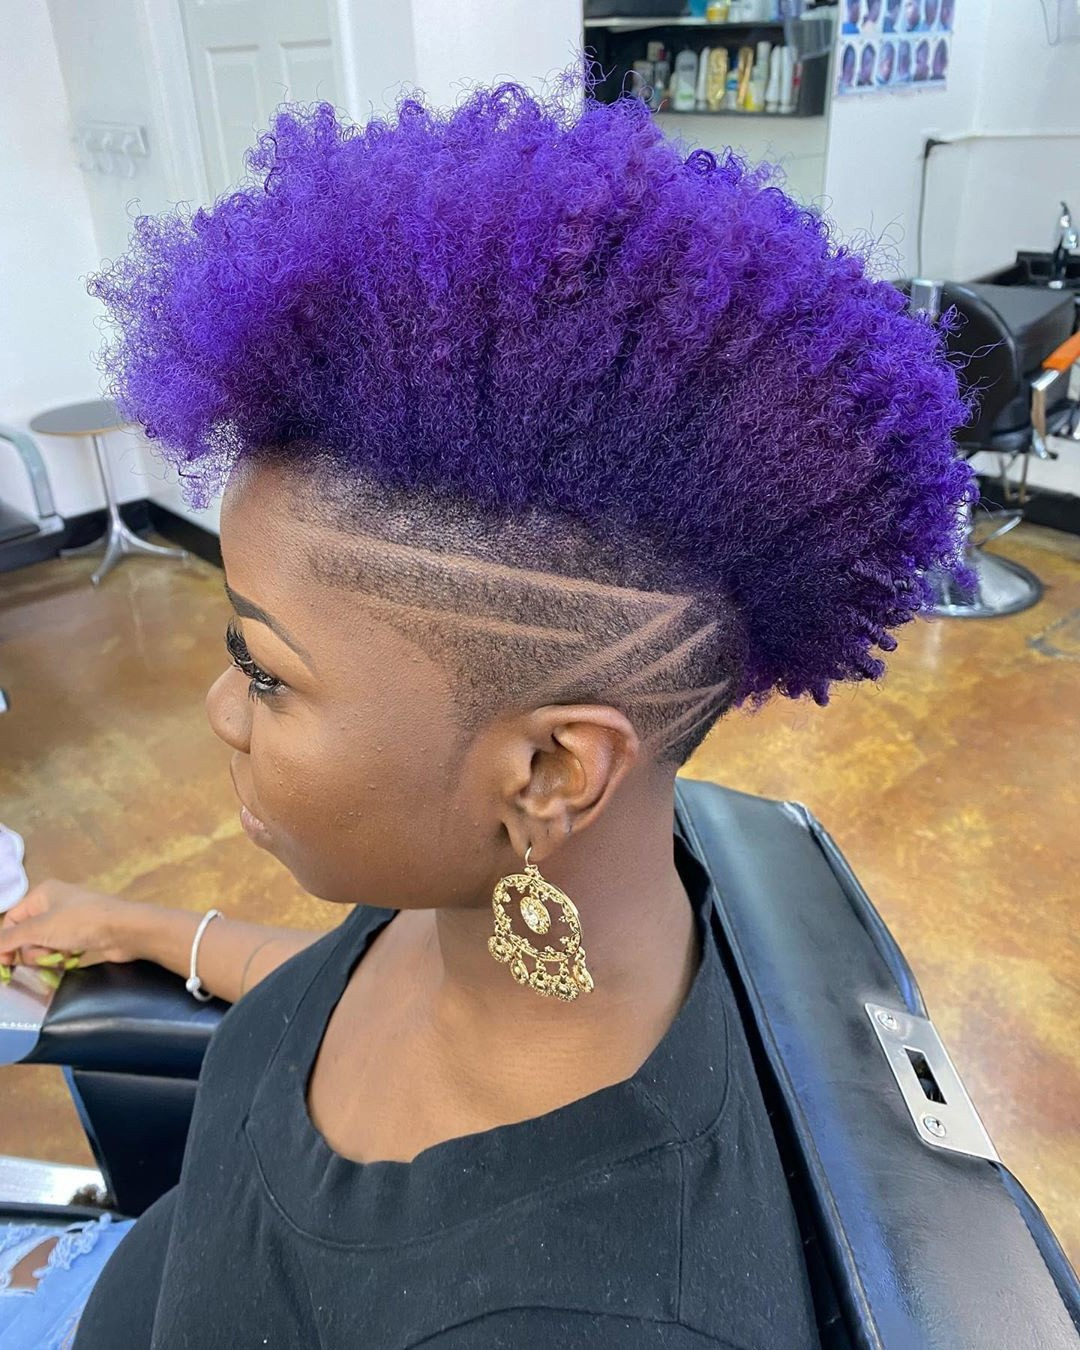 Hairstyle for Purple Curly Hair